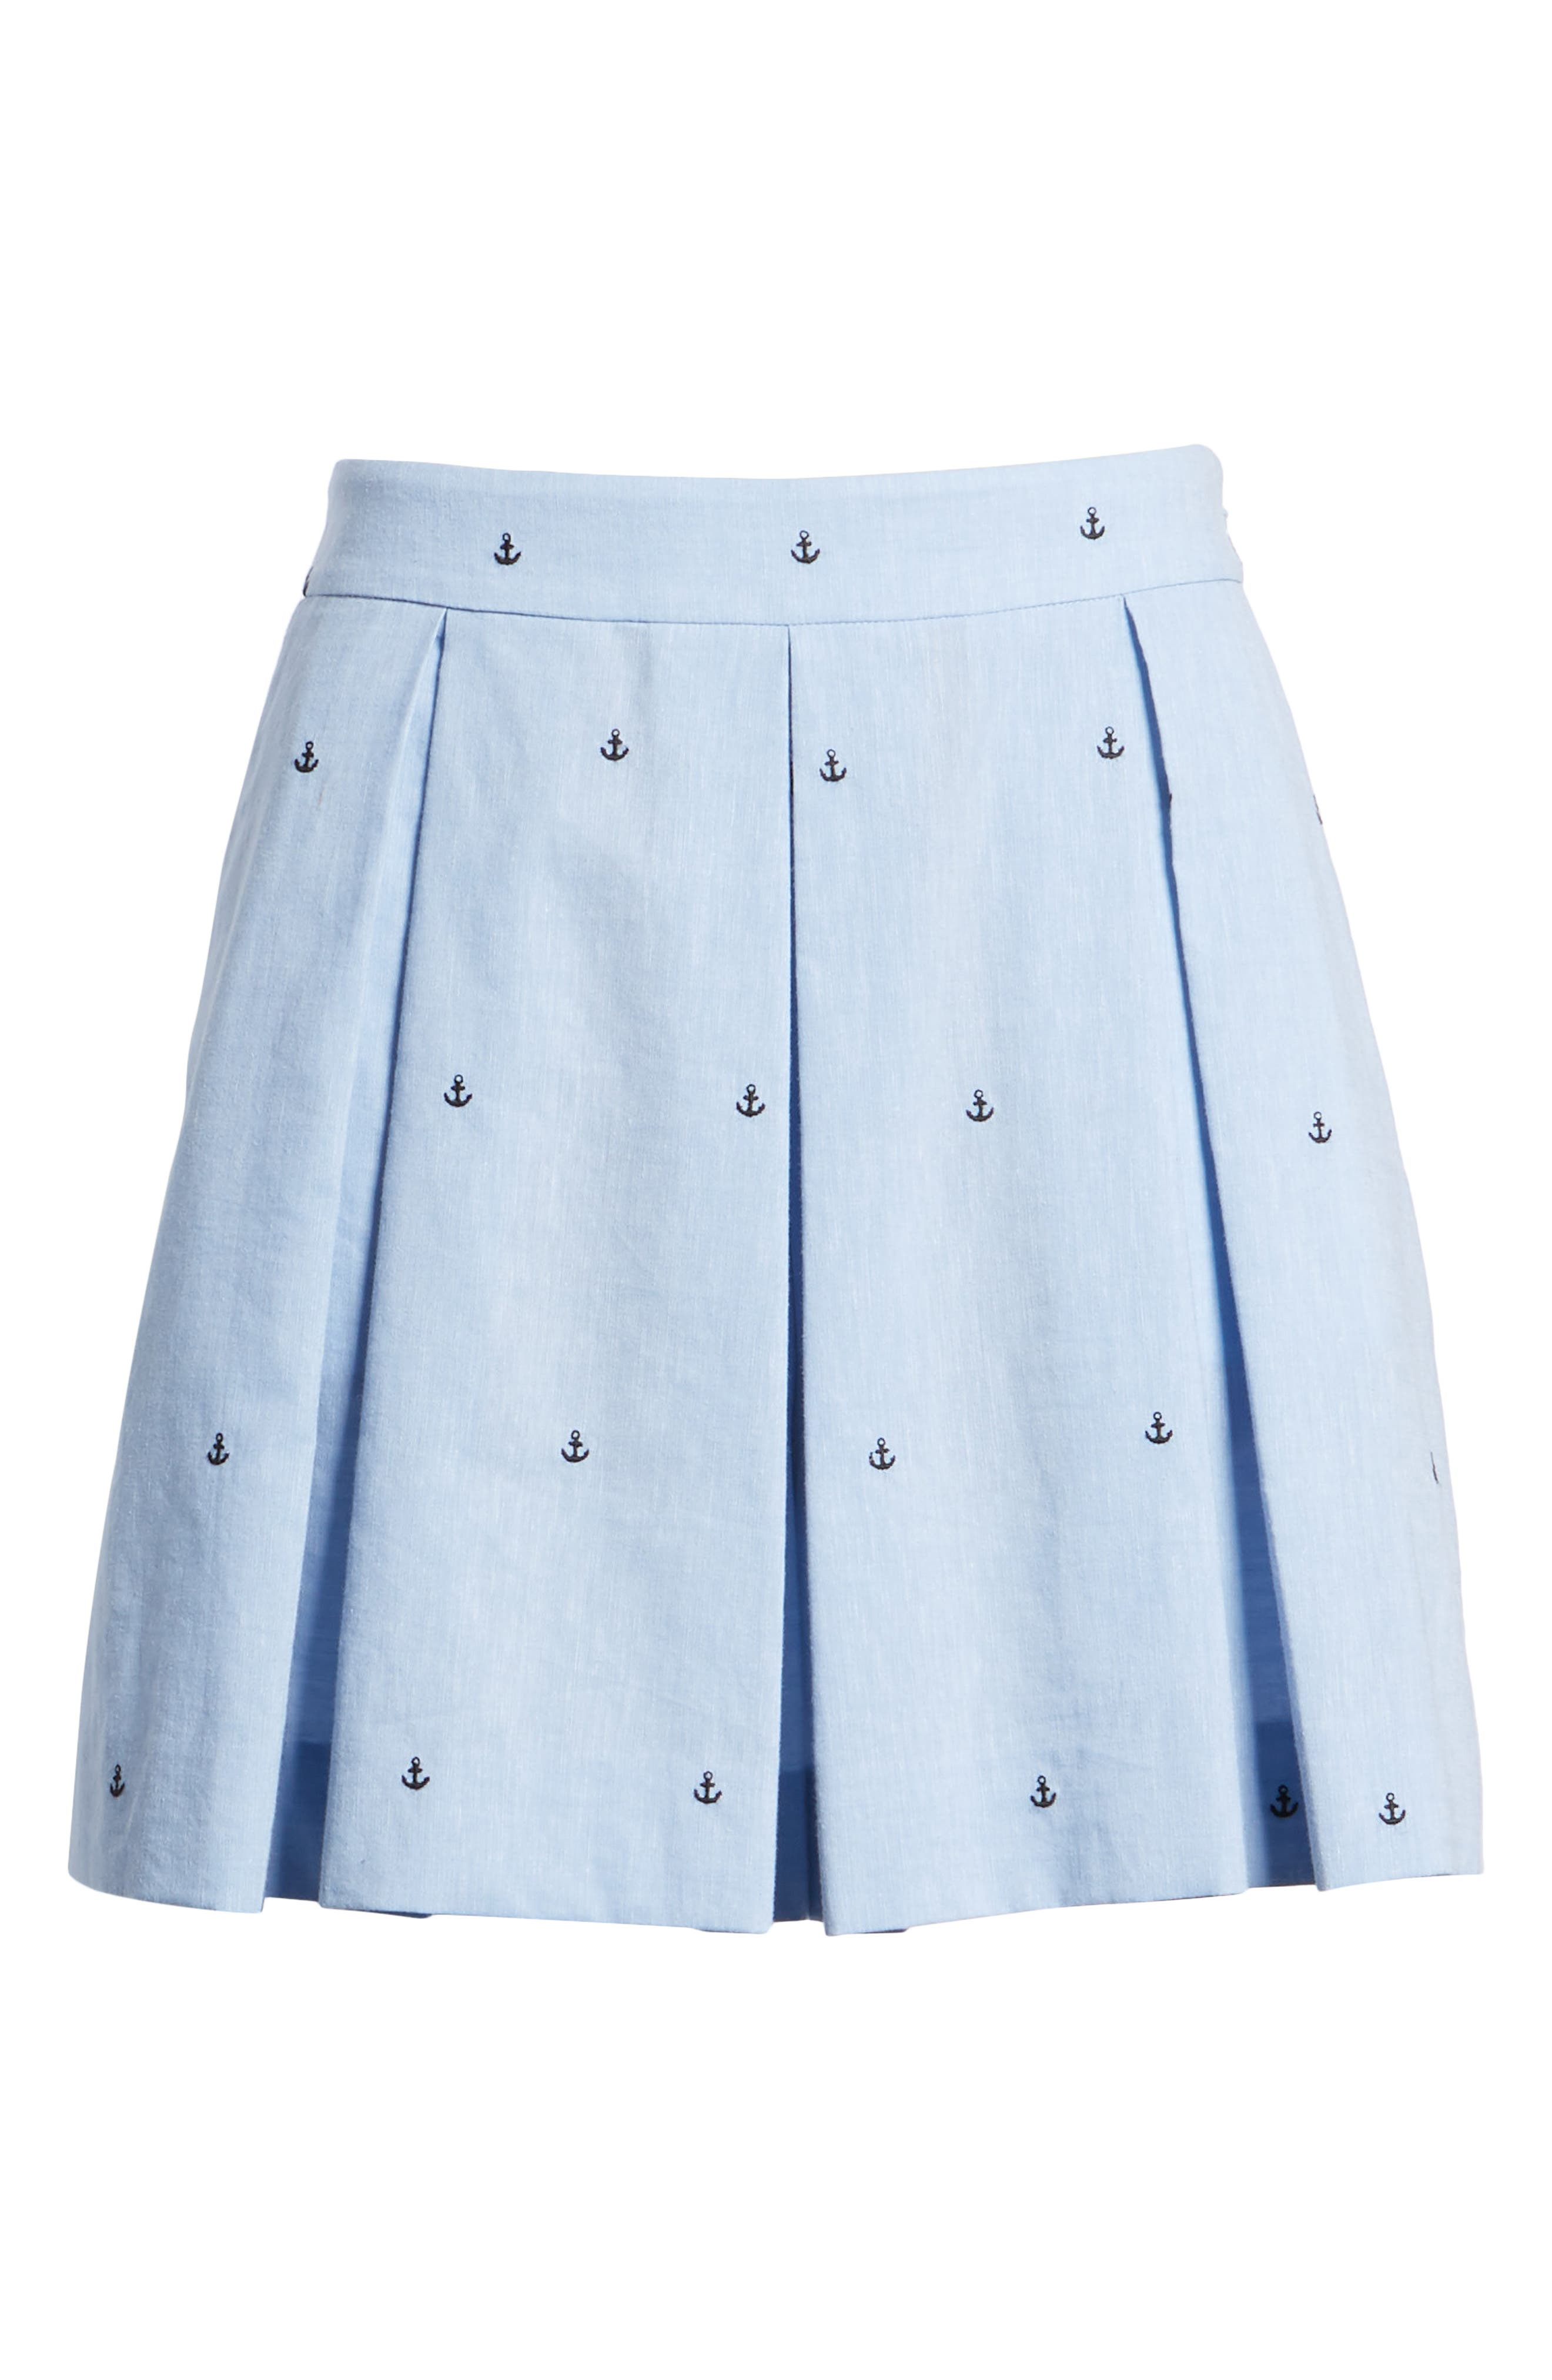 Anchor Embroidery Pleated Cotton Shorts,                             Alternate thumbnail 5, color,                             Chambray Anchor Print